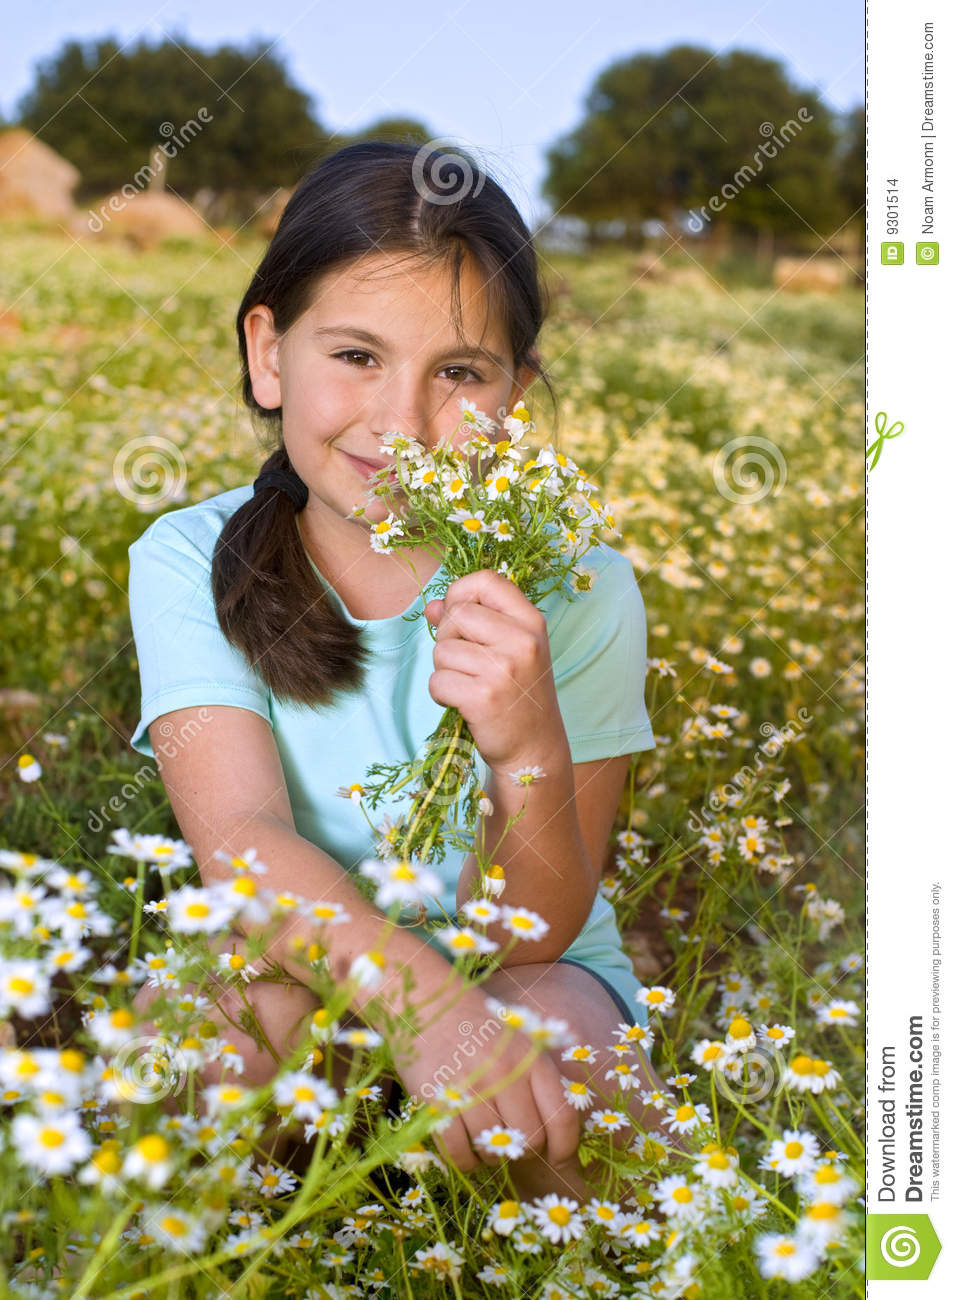 Girl Holding Flowers In Field At Sunset Stock Images ...